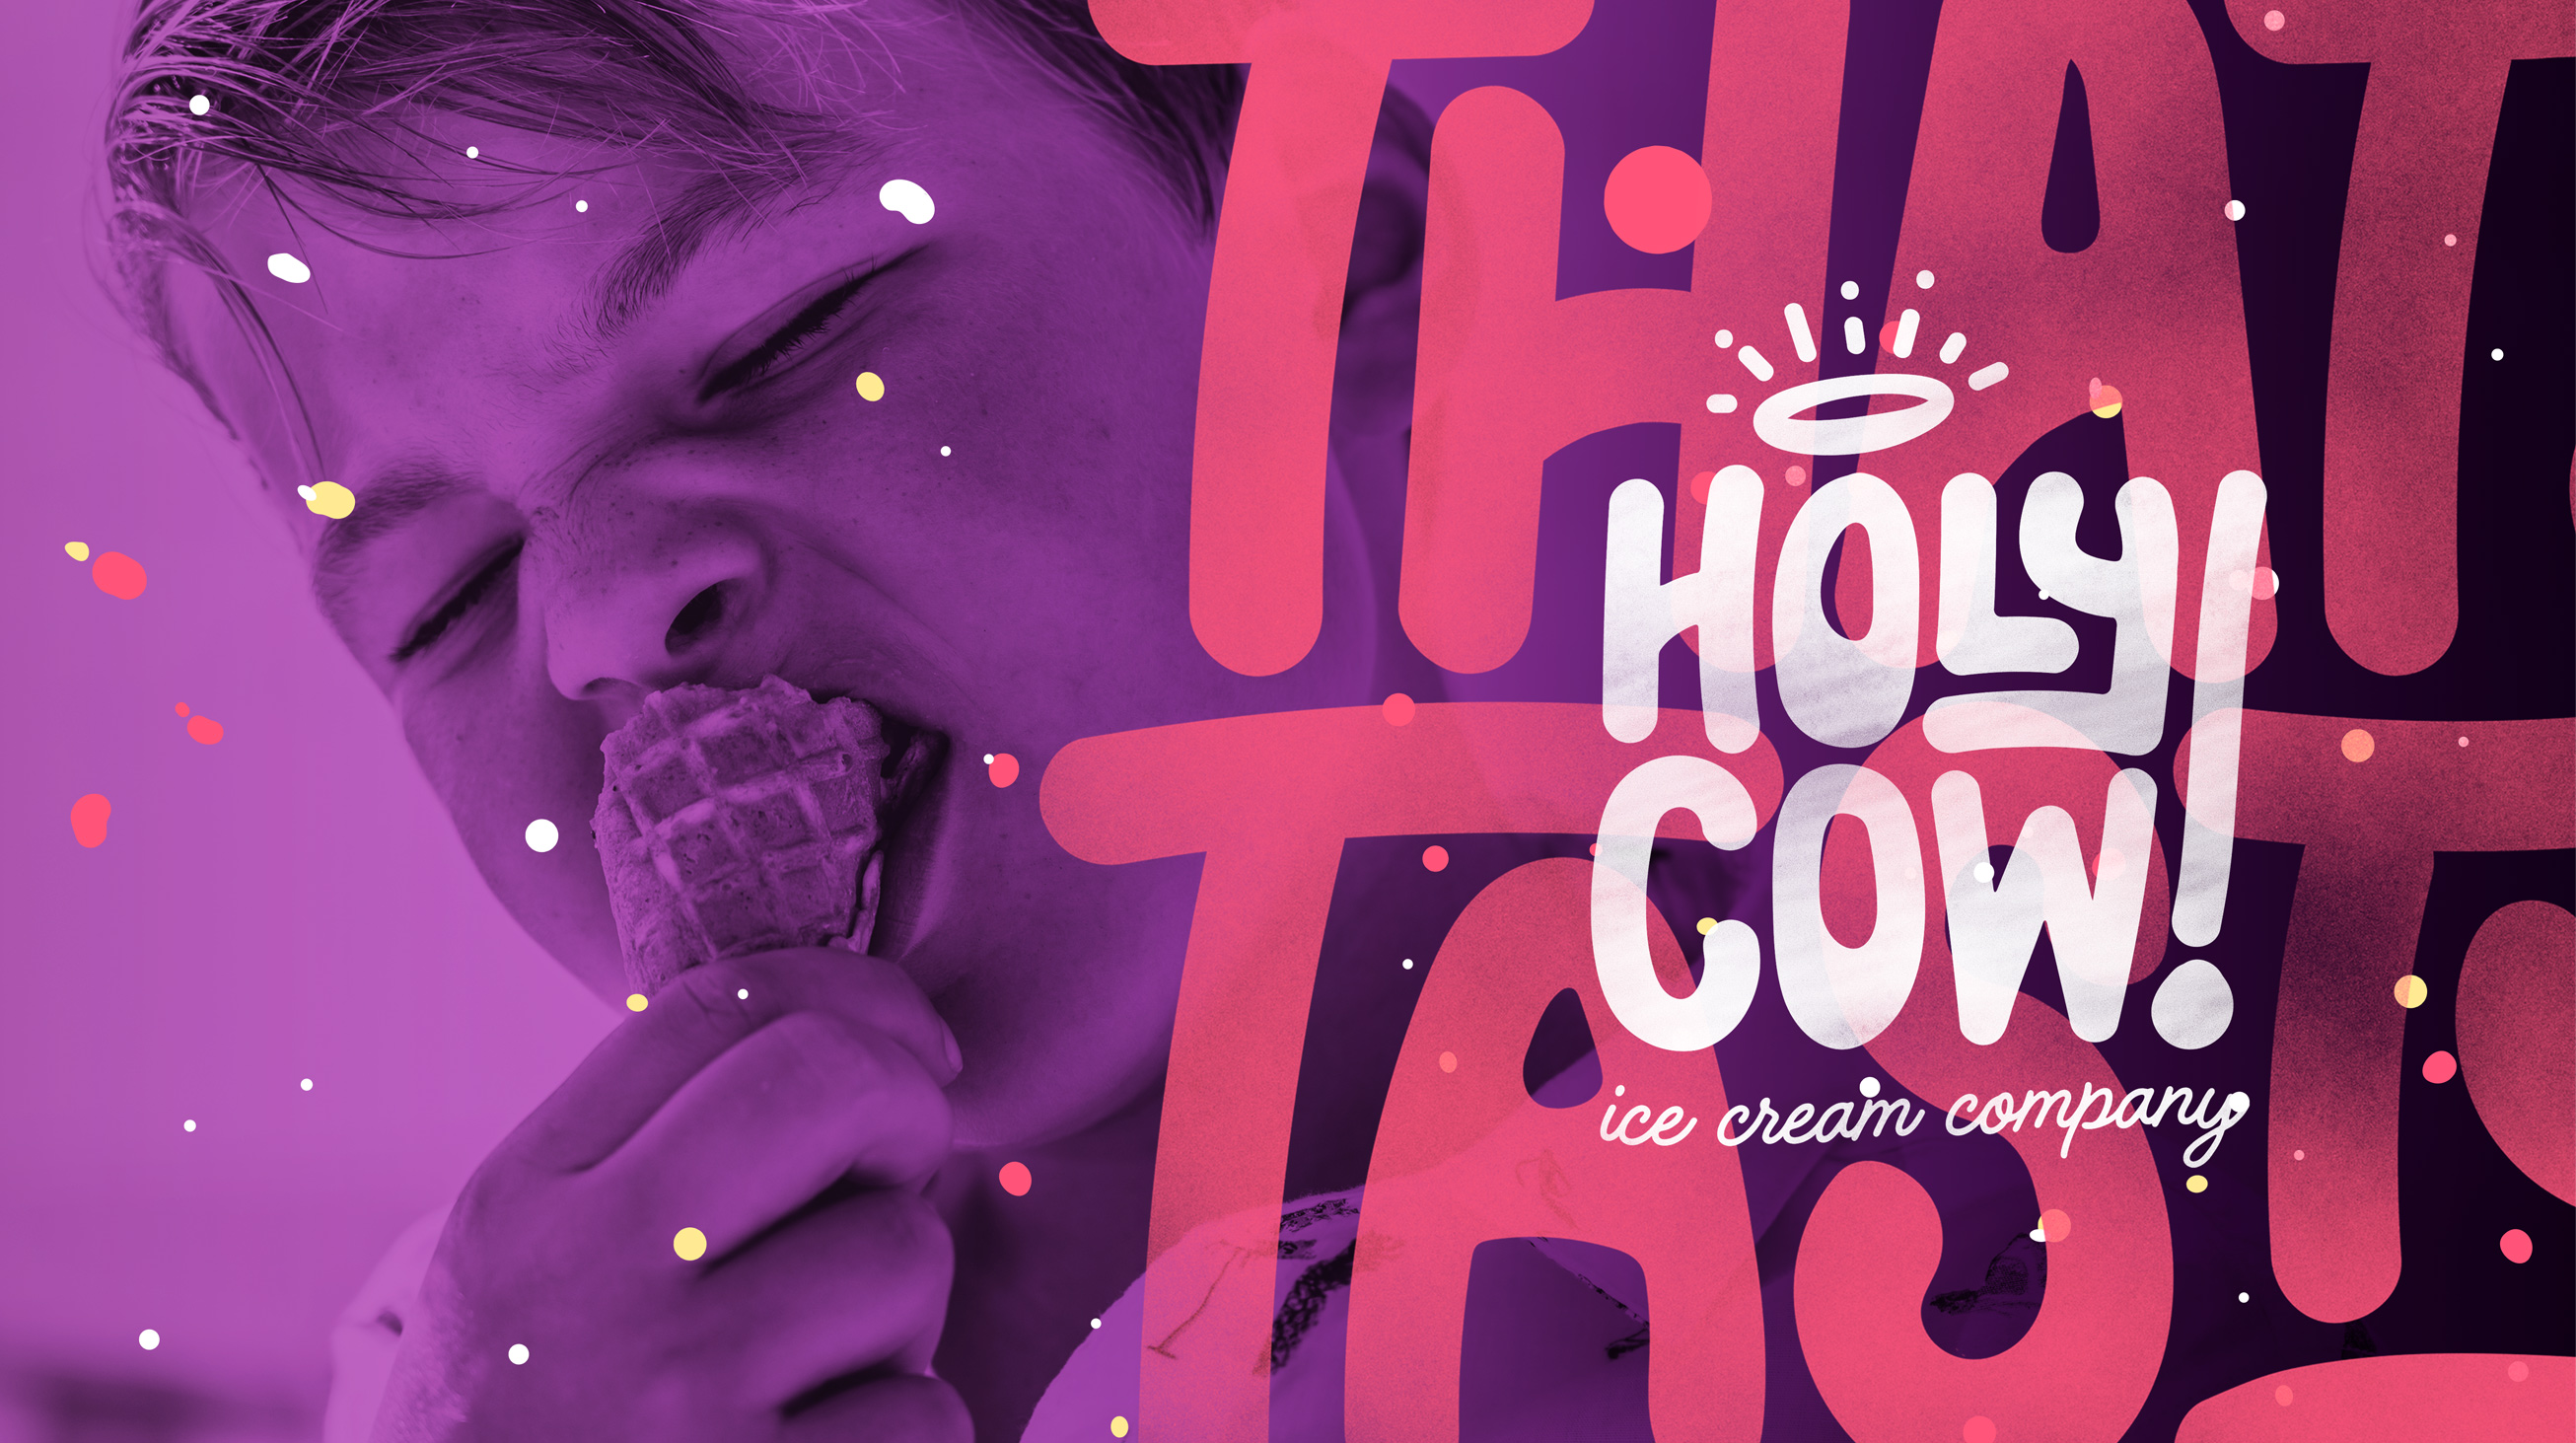 That's Tasty! Holy Cow brand design typography visualisation.